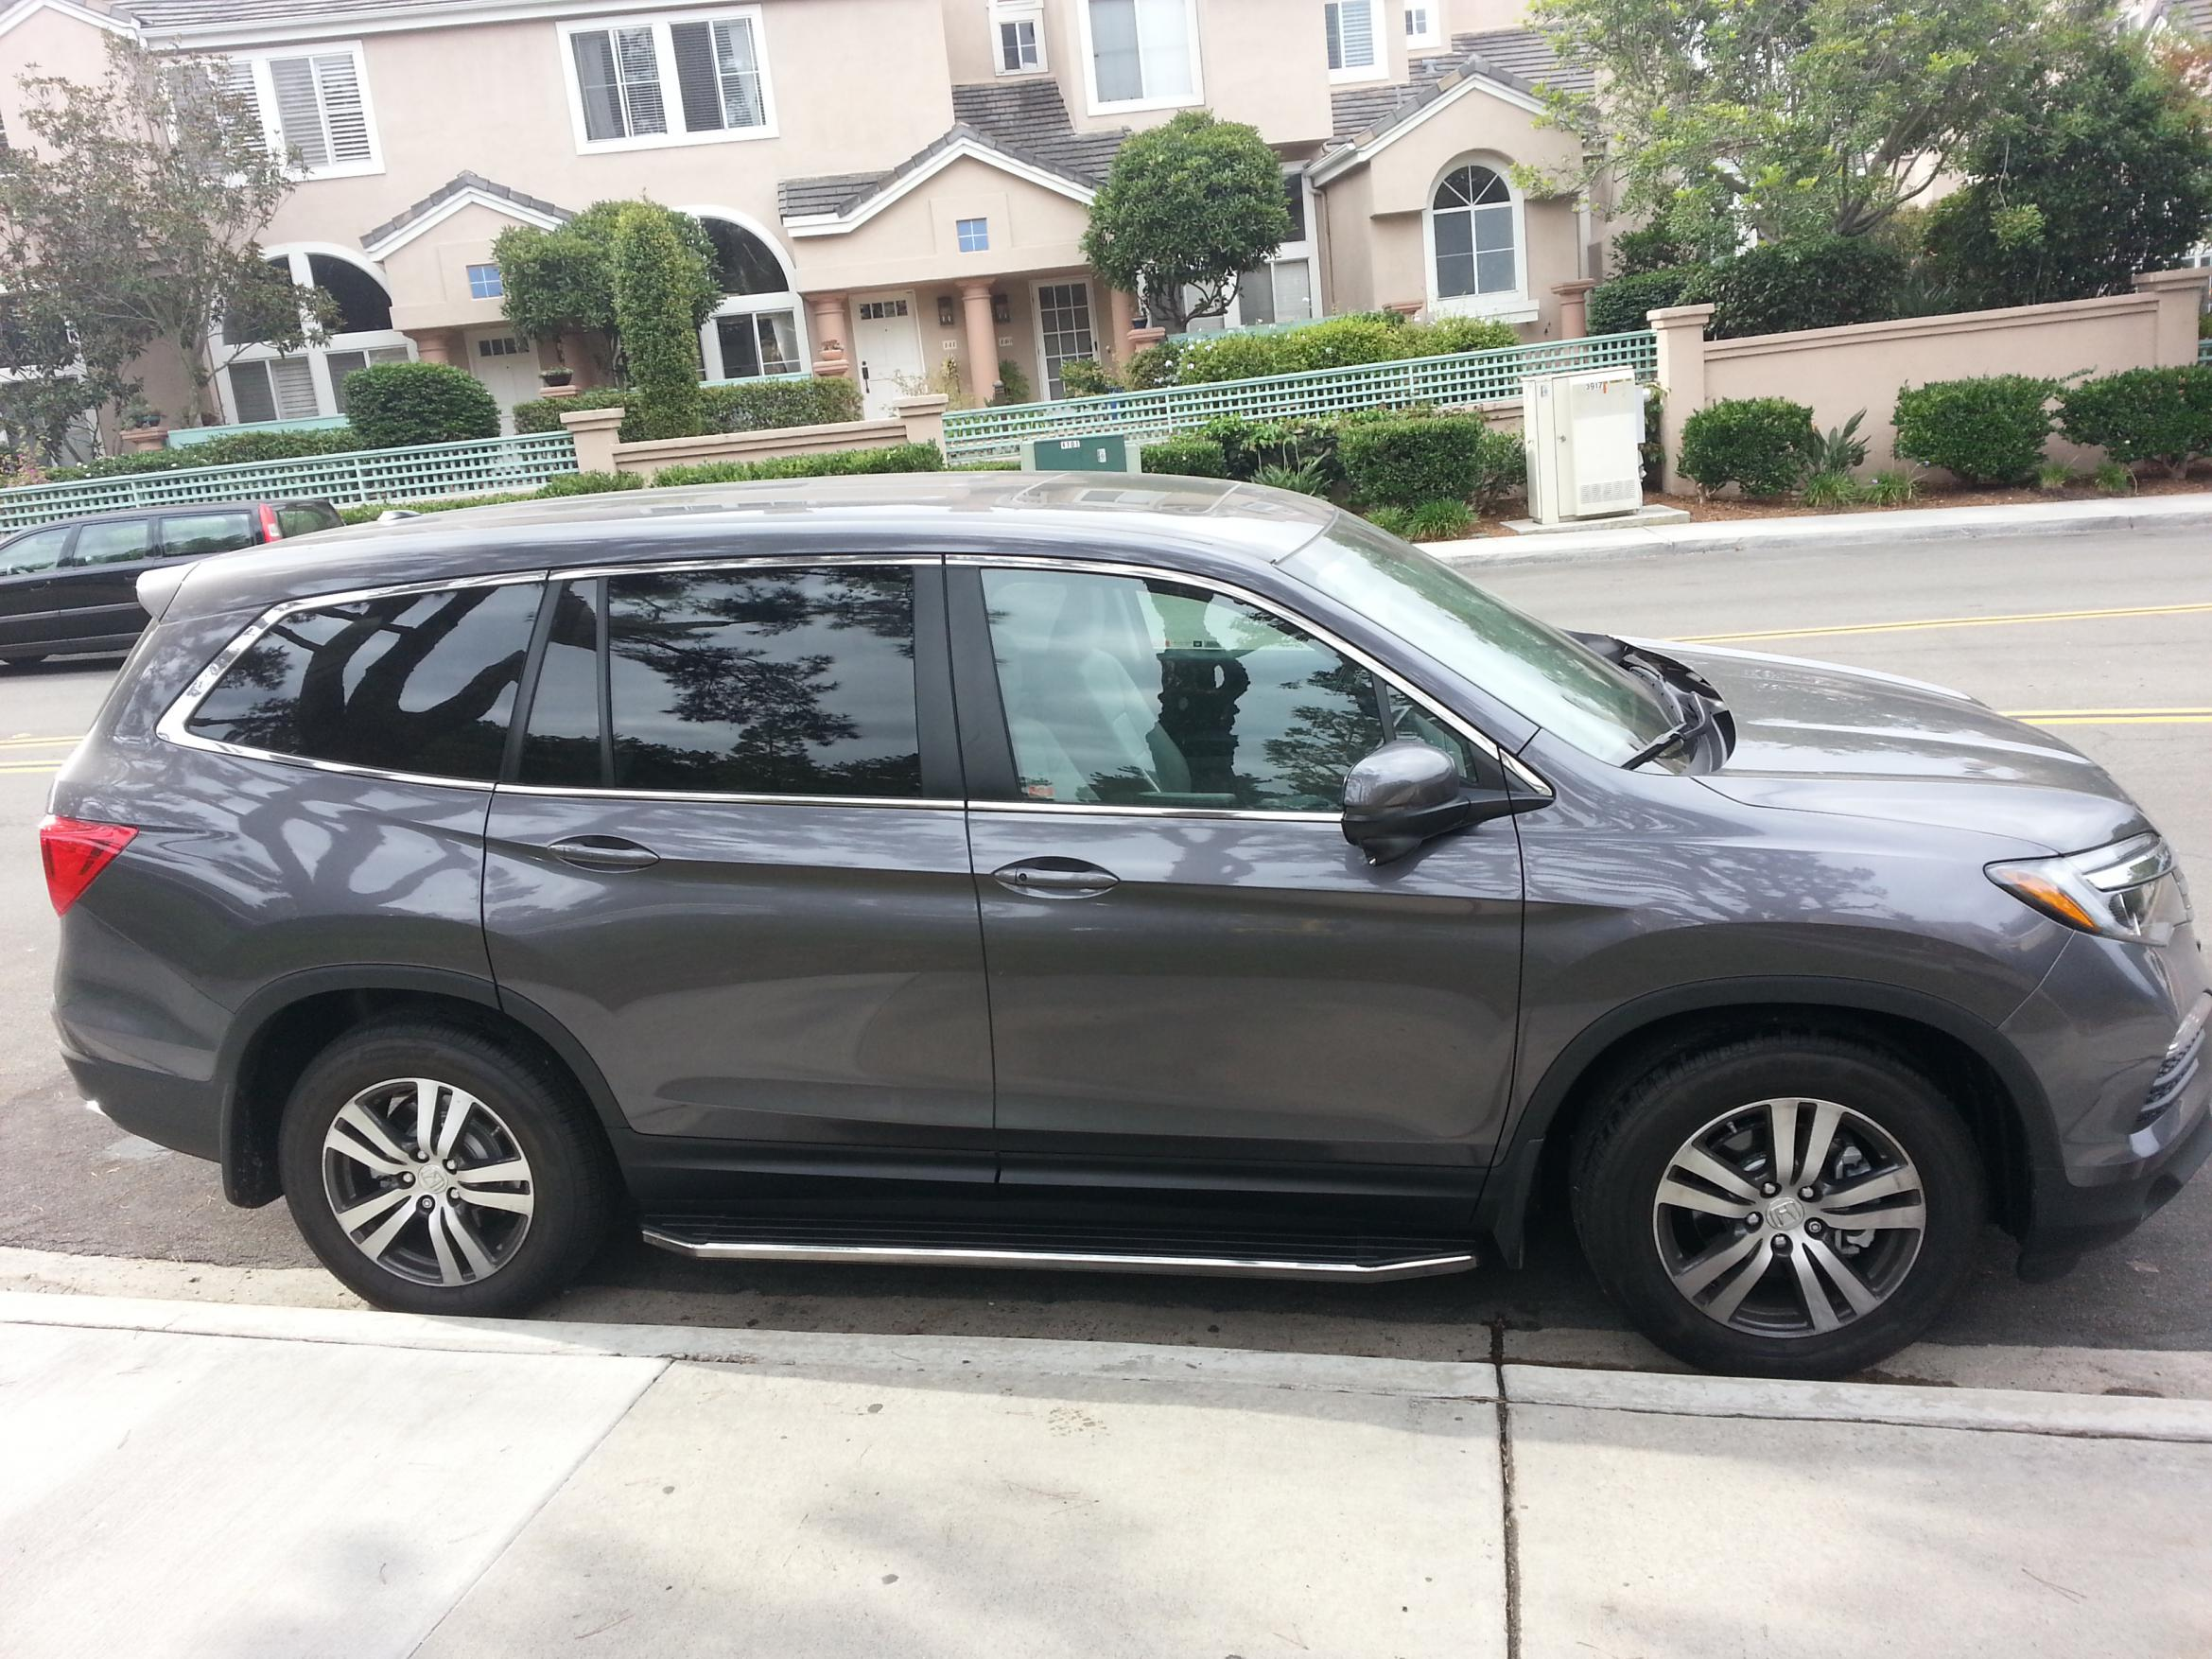 running boards - Page 15 - Honda Pilot - Honda Pilot Forums